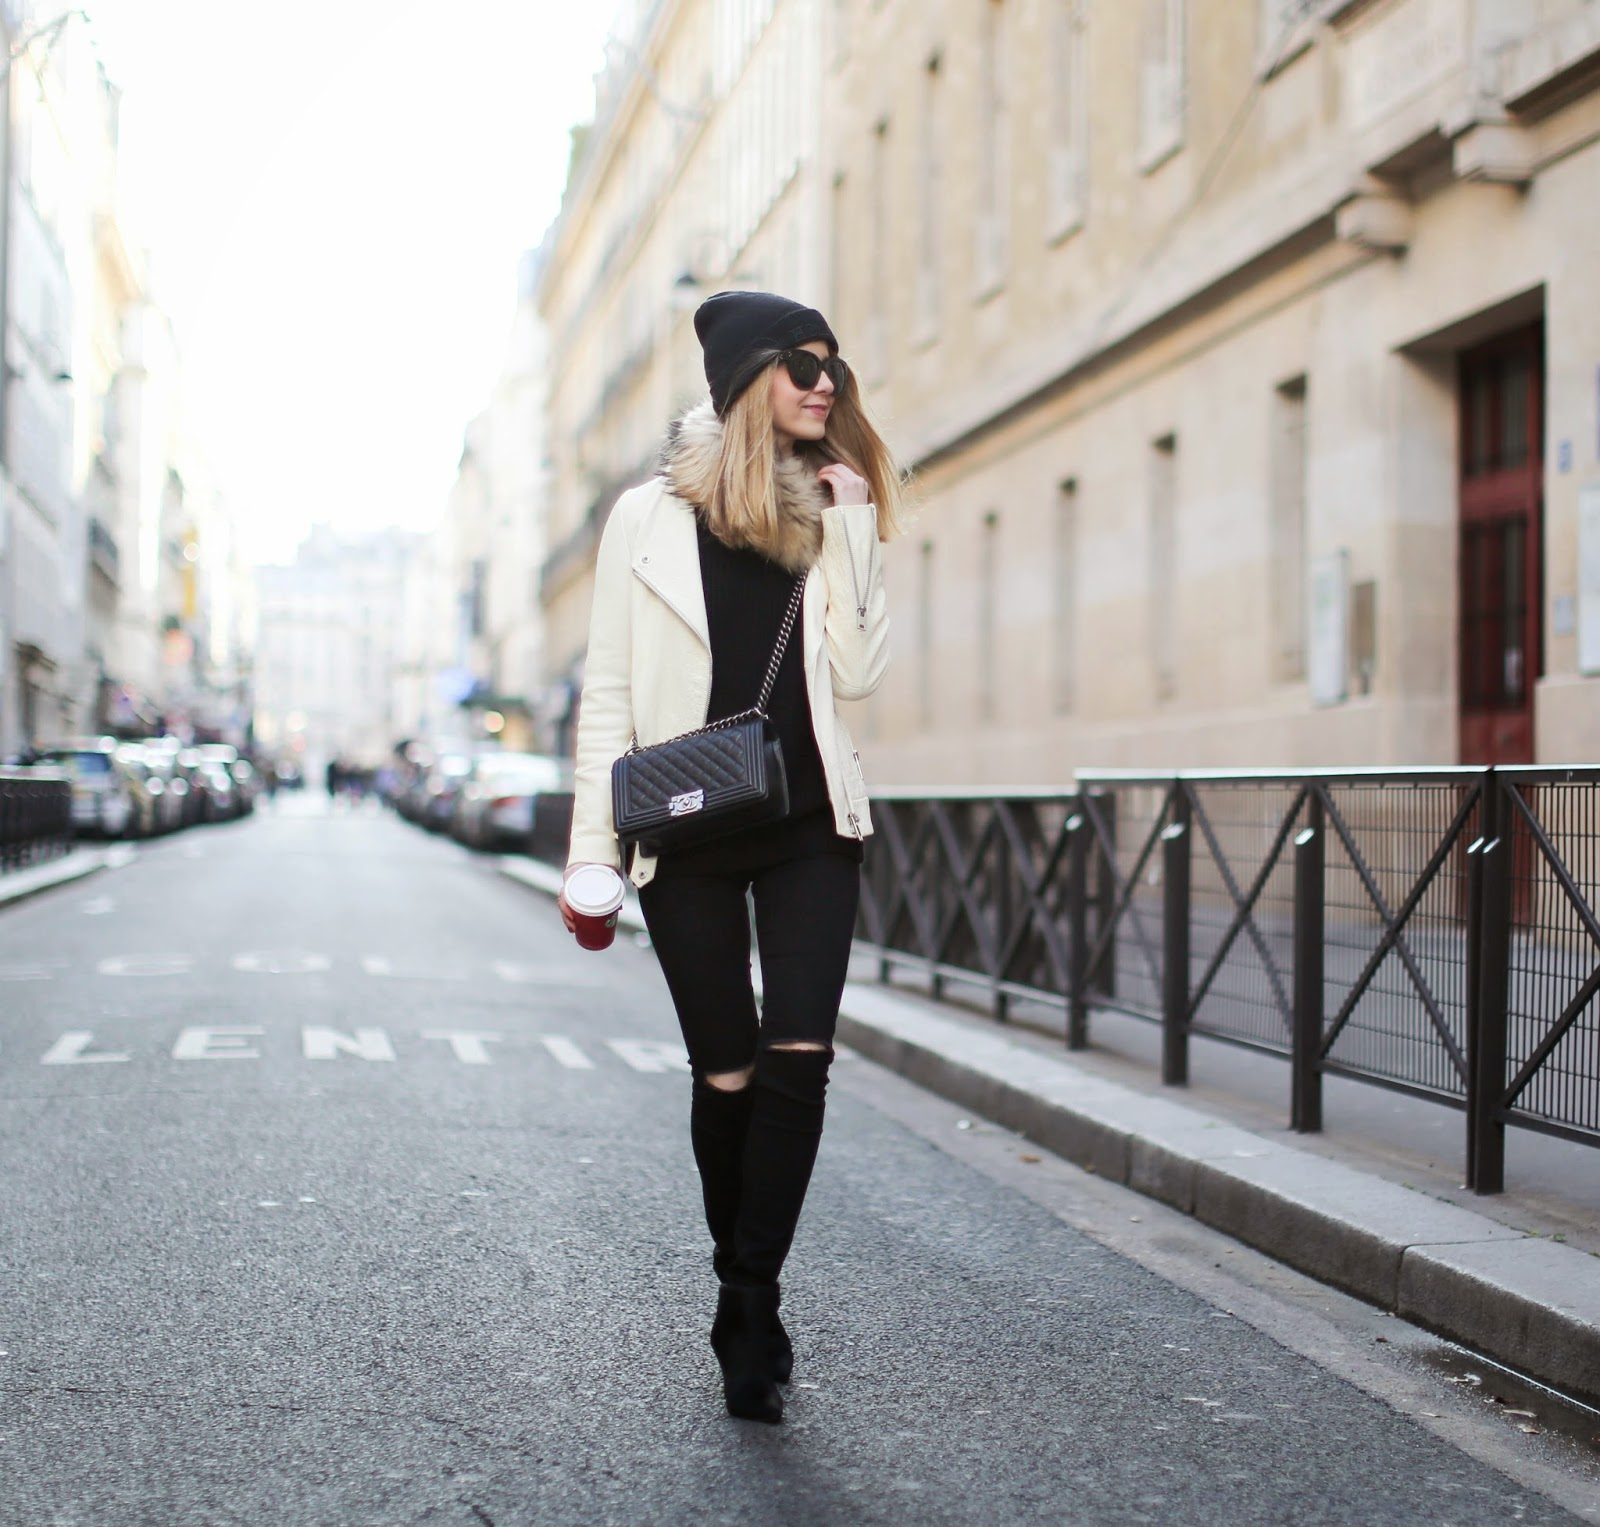 zara, topshop, homies, black and white, chanel, streetstyle, fashion blogger, paris